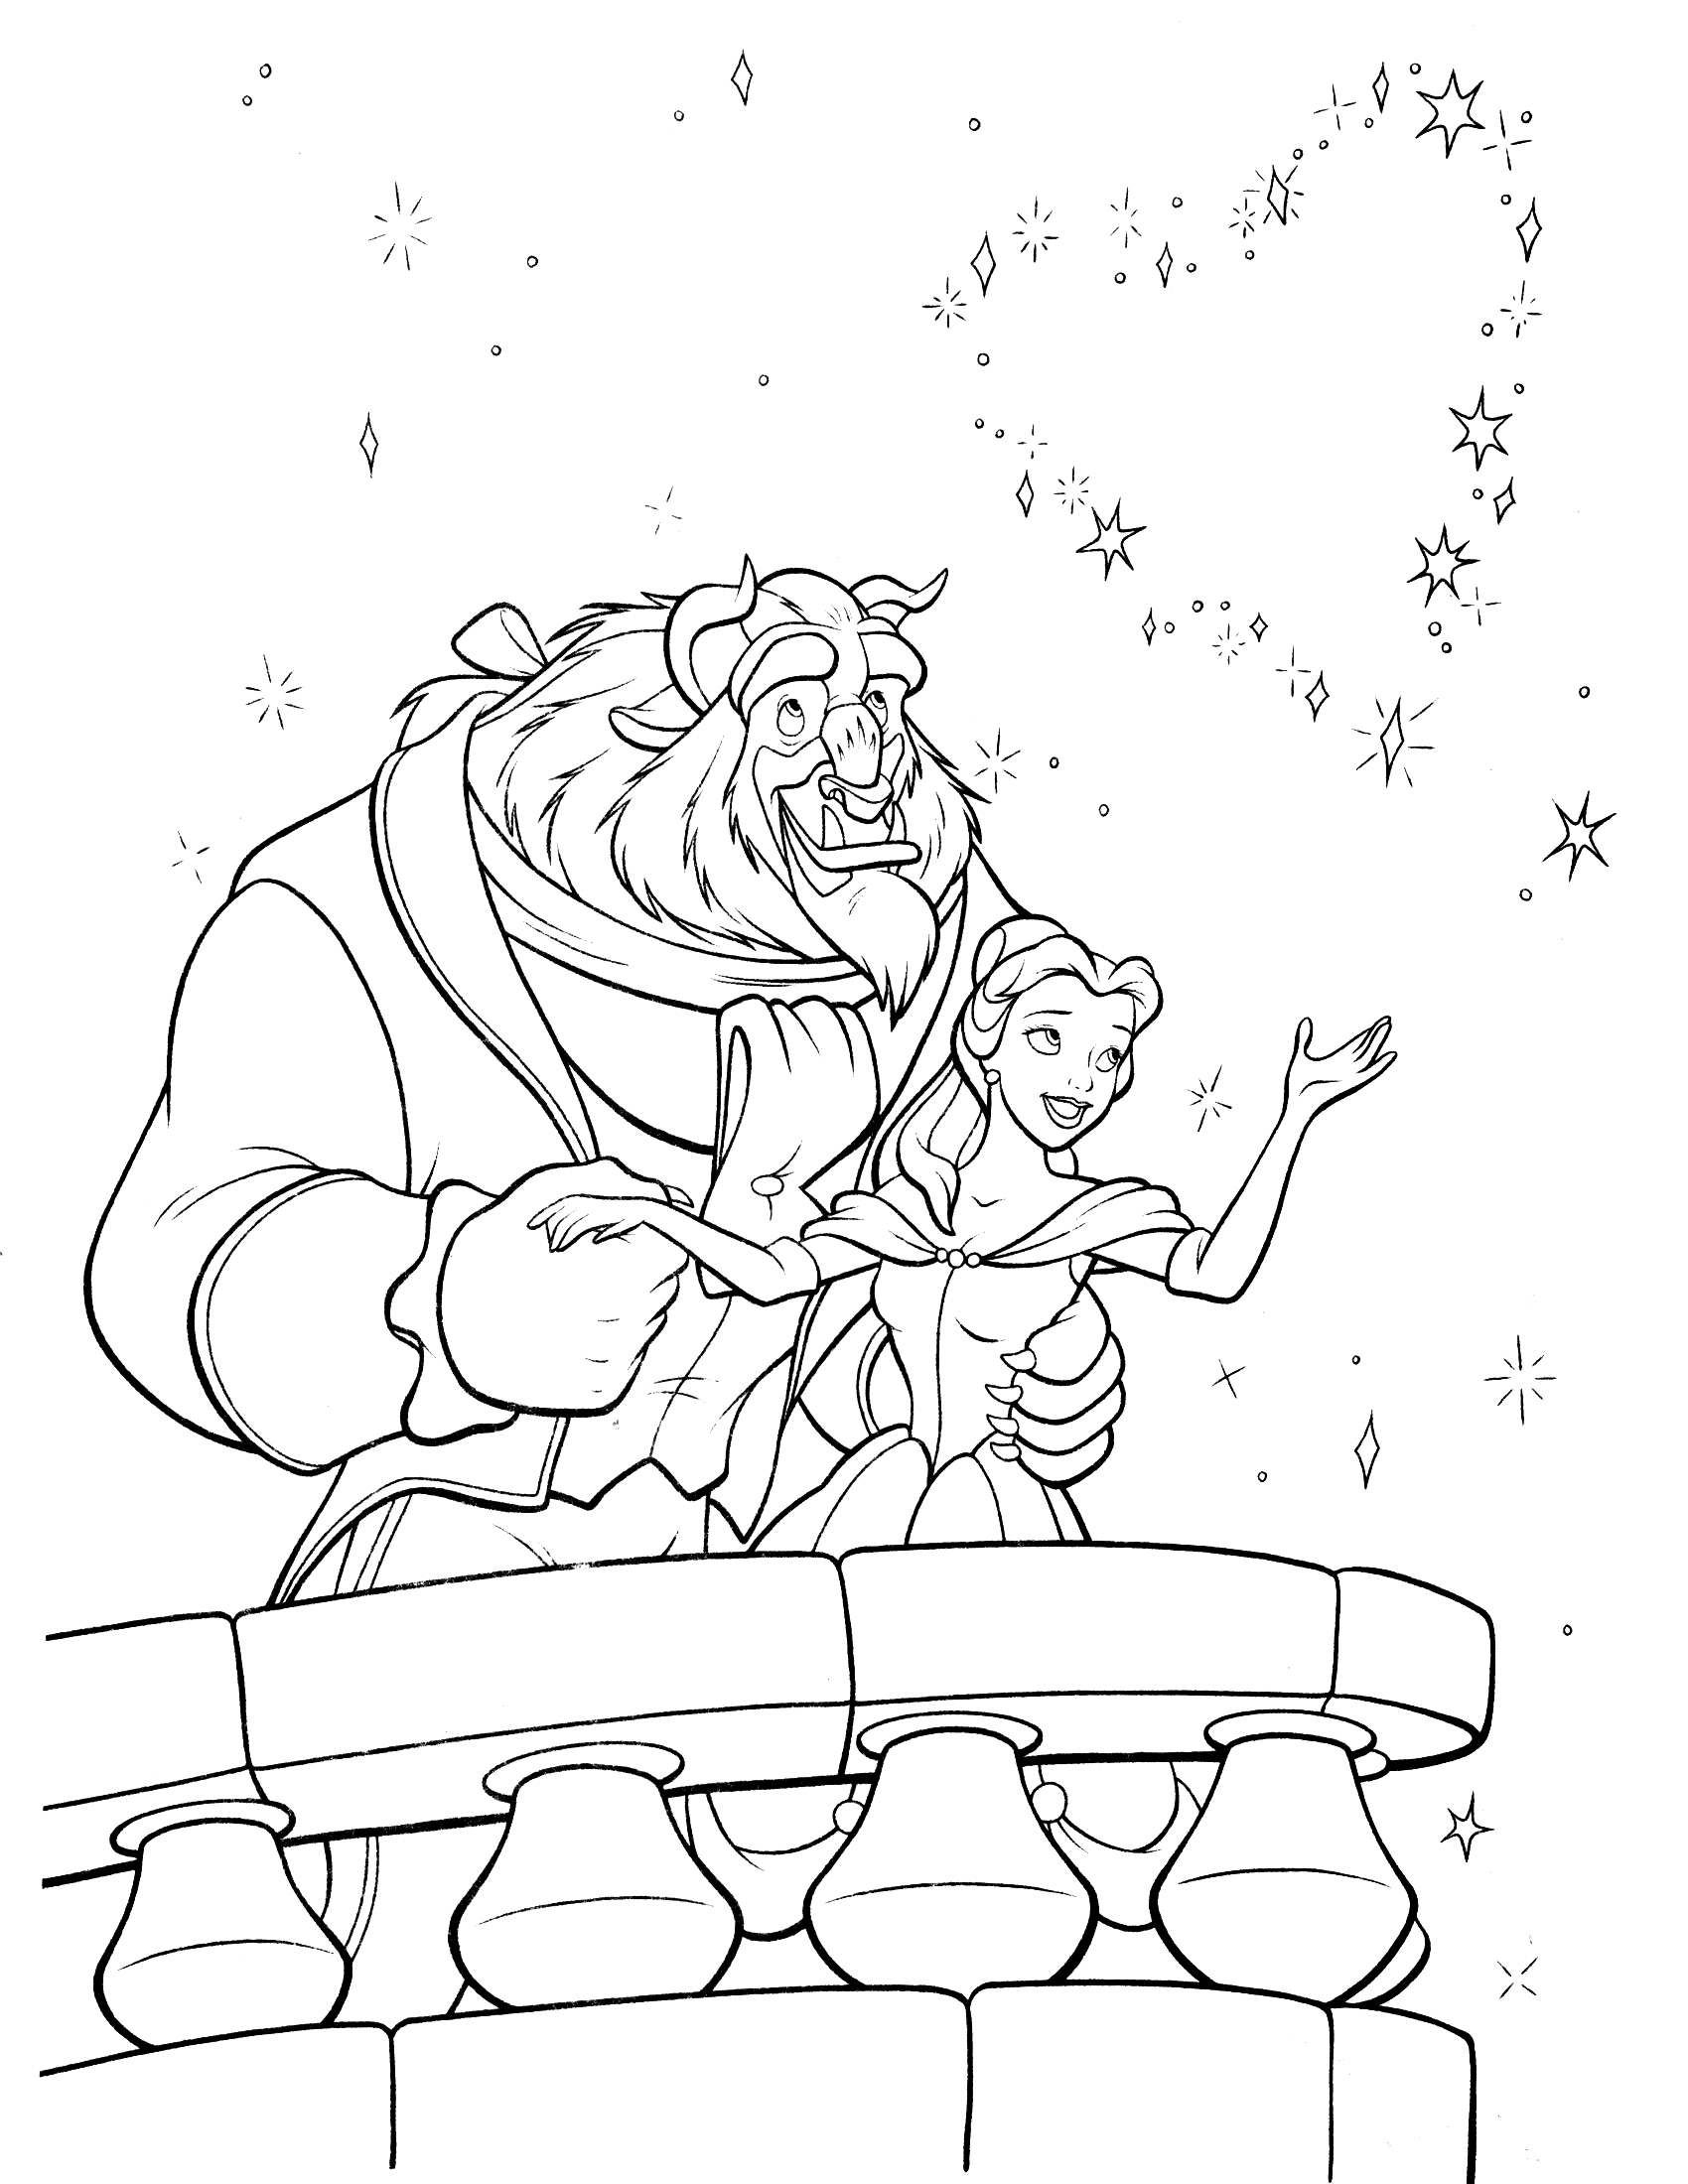 beauty and the beast colouring pages beauty and the beast coloring pages 2 disneyclipscom pages the beast and beauty colouring